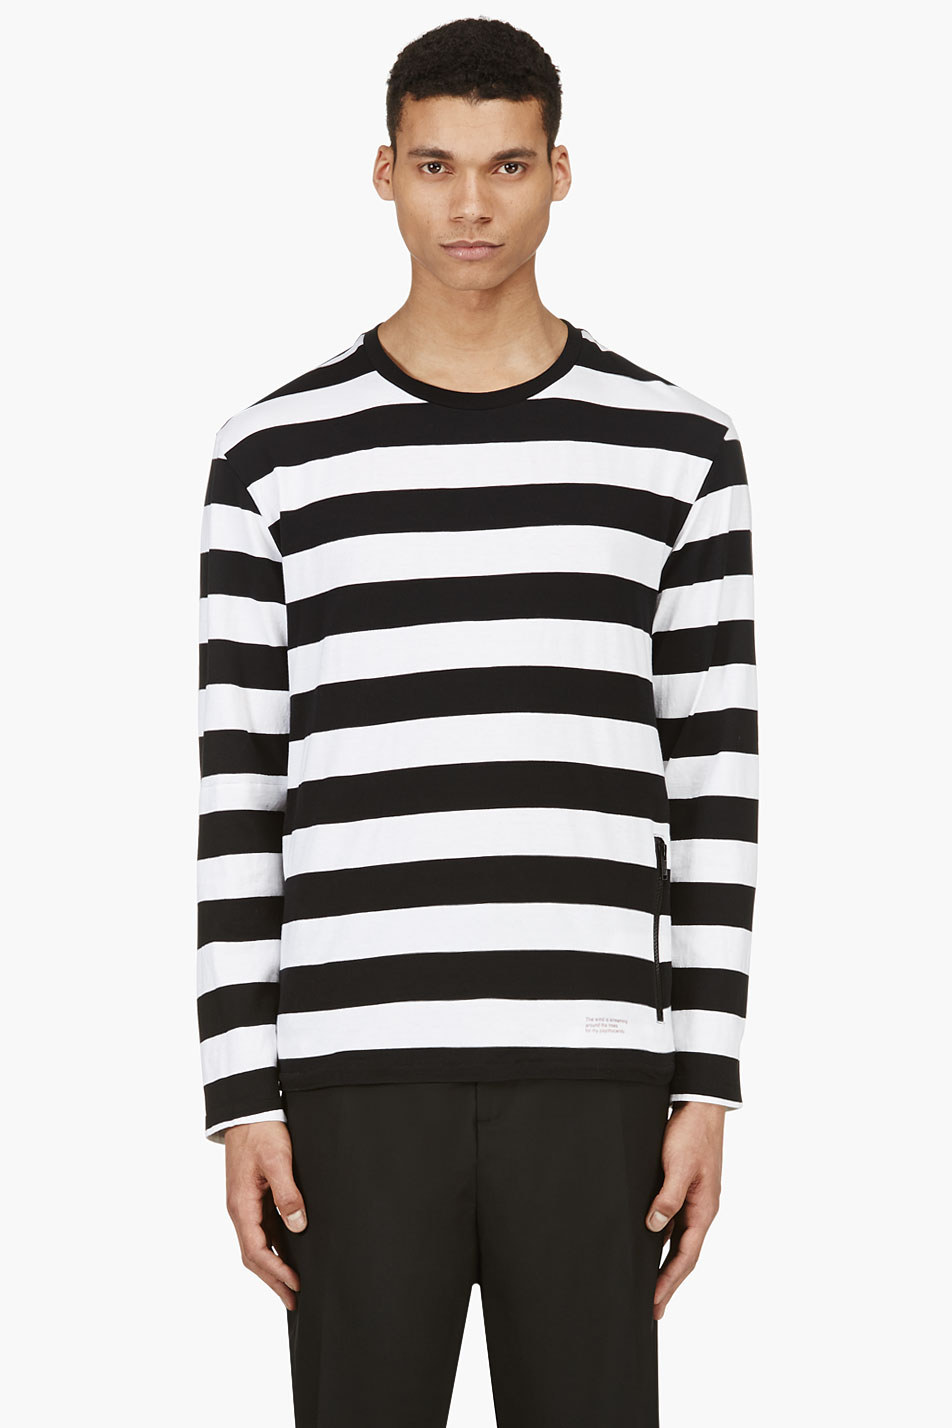 Undercover black and white stripe long sleeve t shirt in Striped long sleeve t shirt